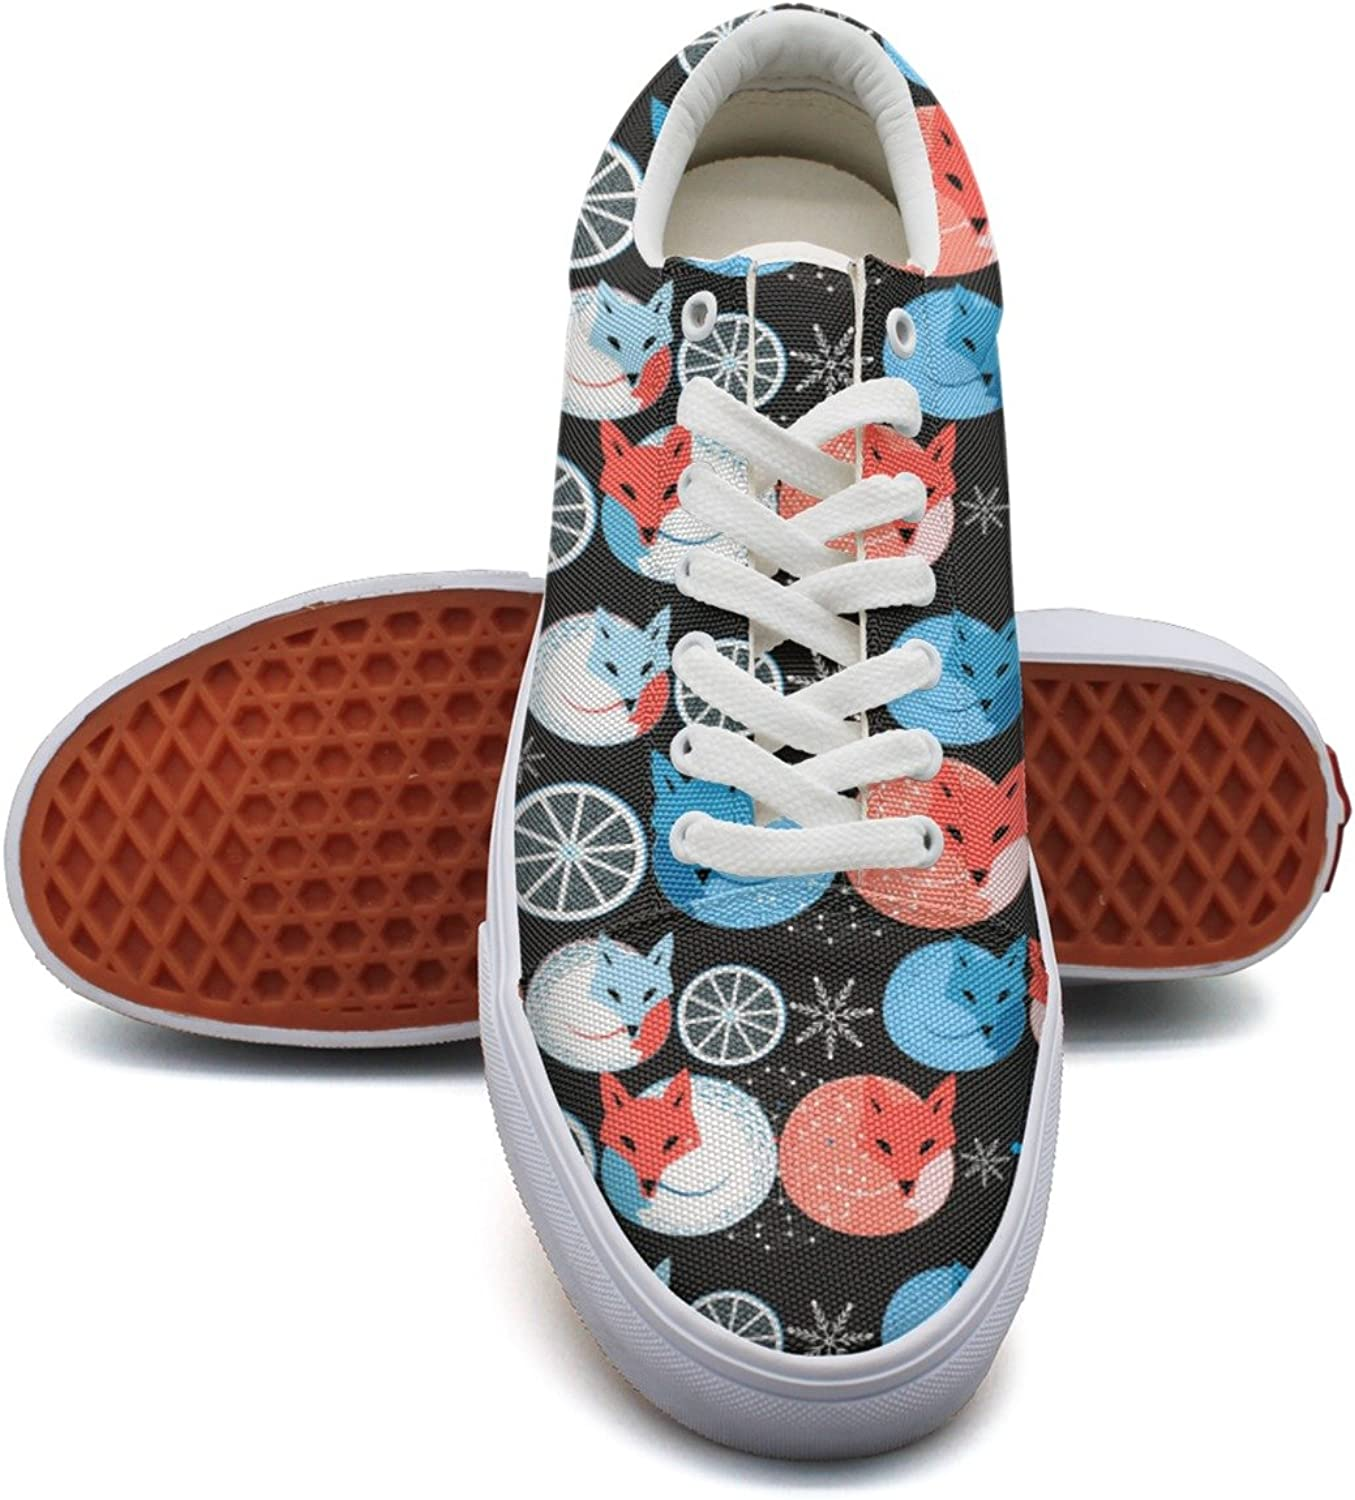 Funny Fox Eating Lemons Womens Fashion Canvas Deck shoes Low Top Exclusive Tennis shoes for Women's